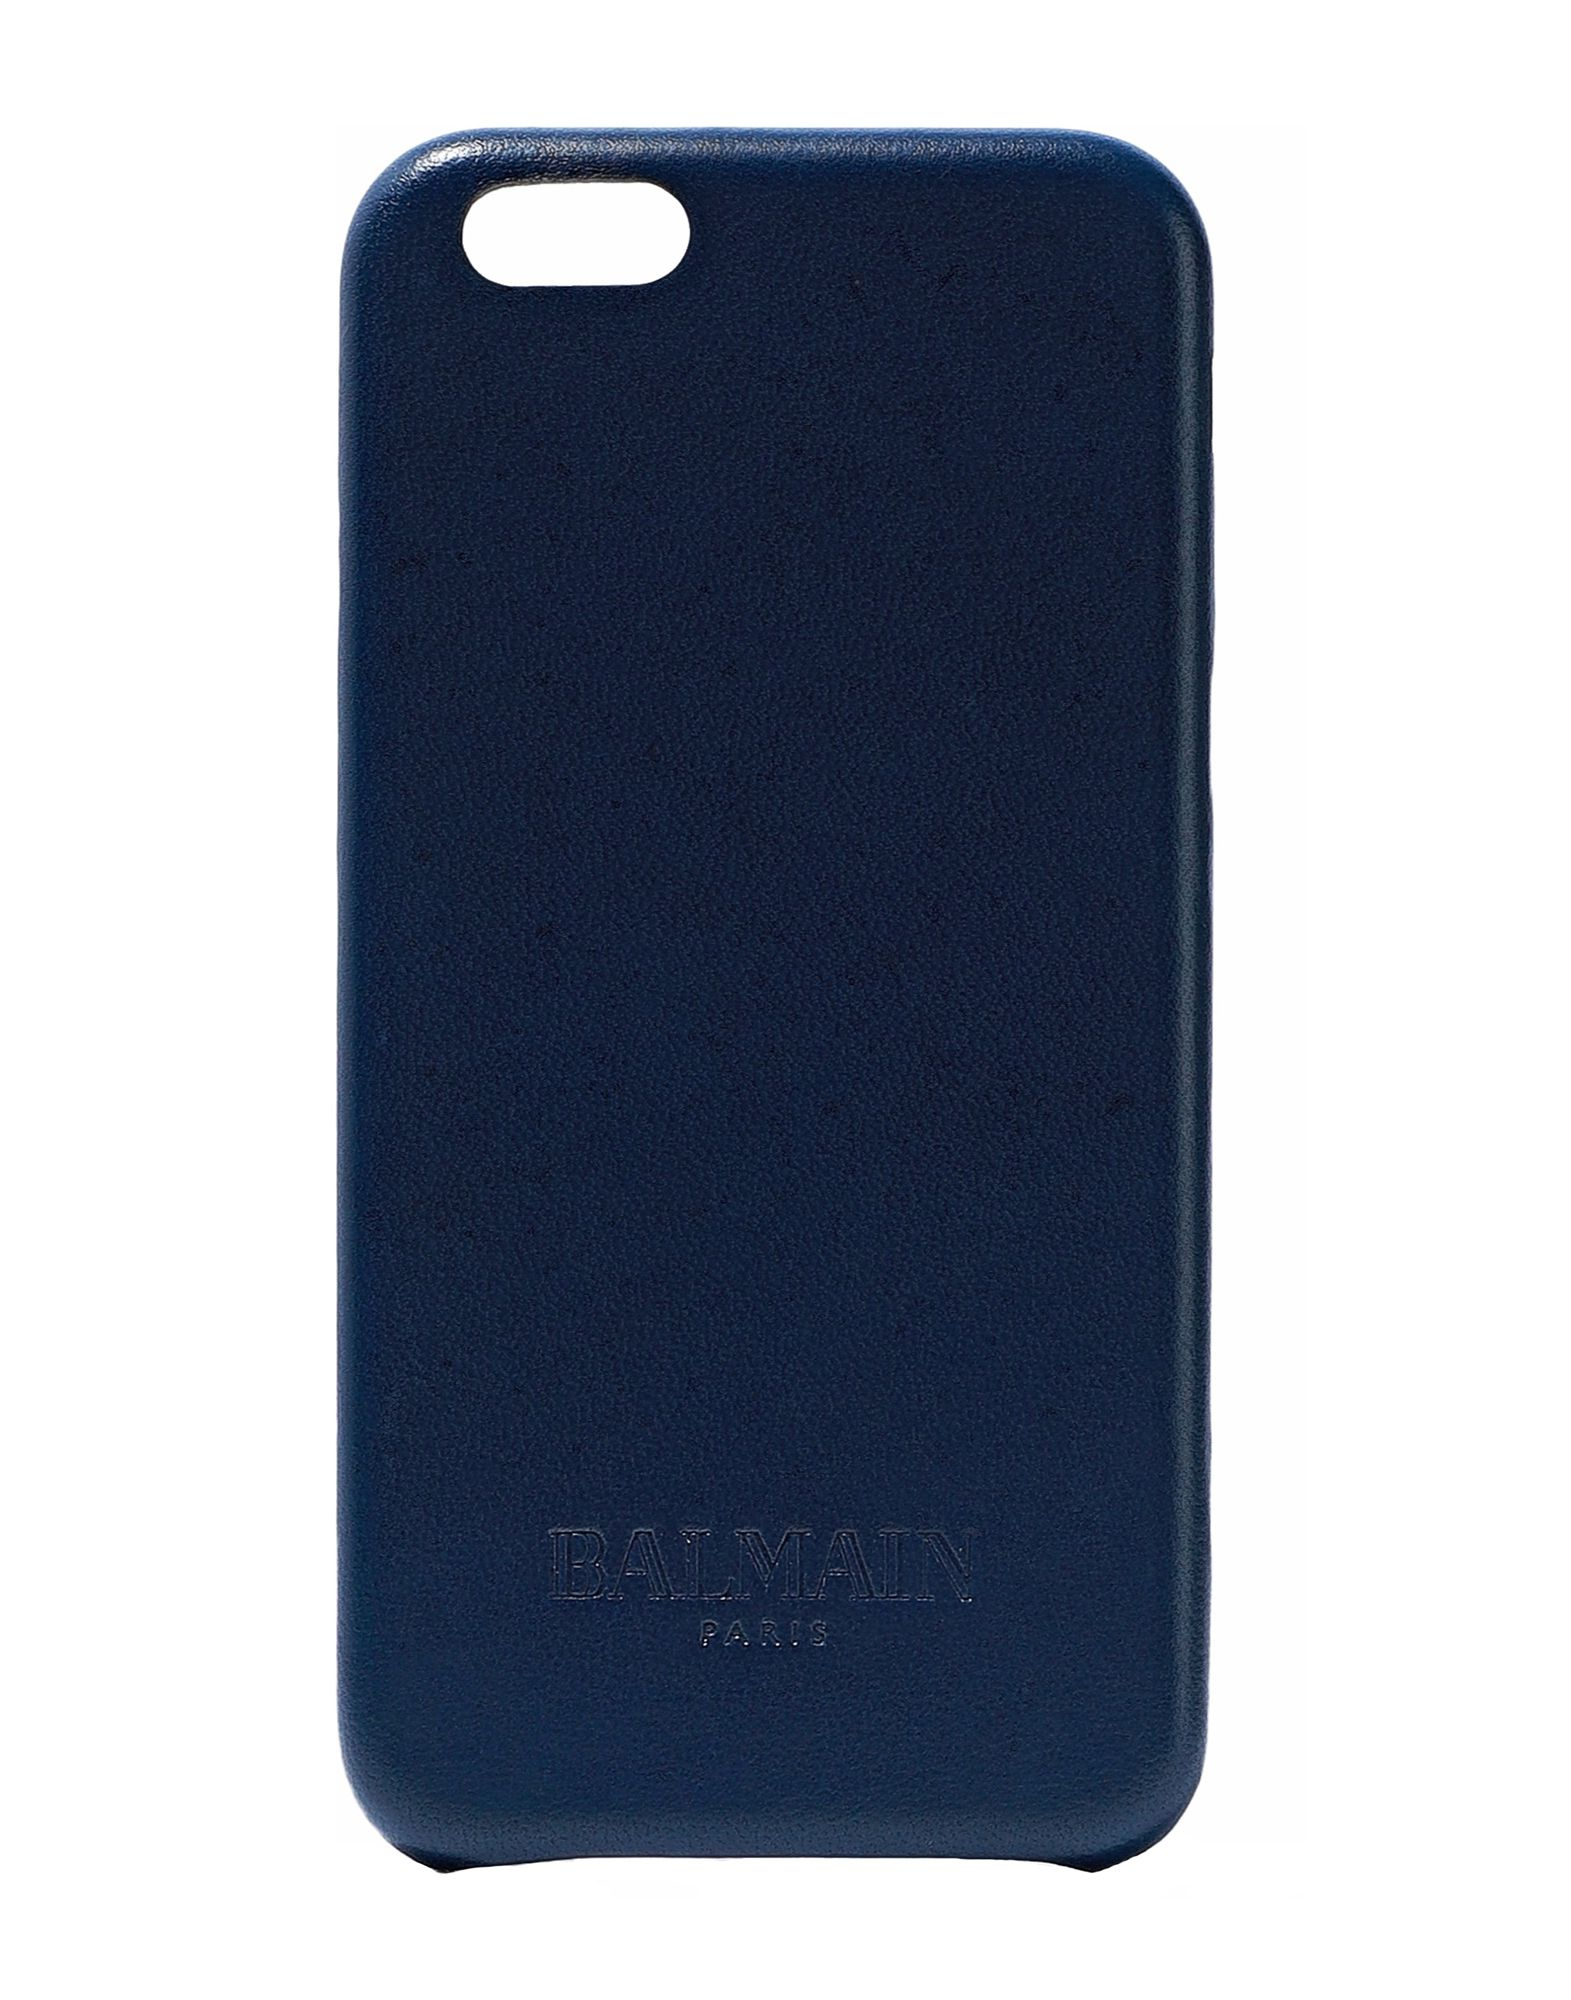 BALMAIN Covers & Cases. logo, solid color, contains non-textile parts of animal origin, phone covers. Soft Leather